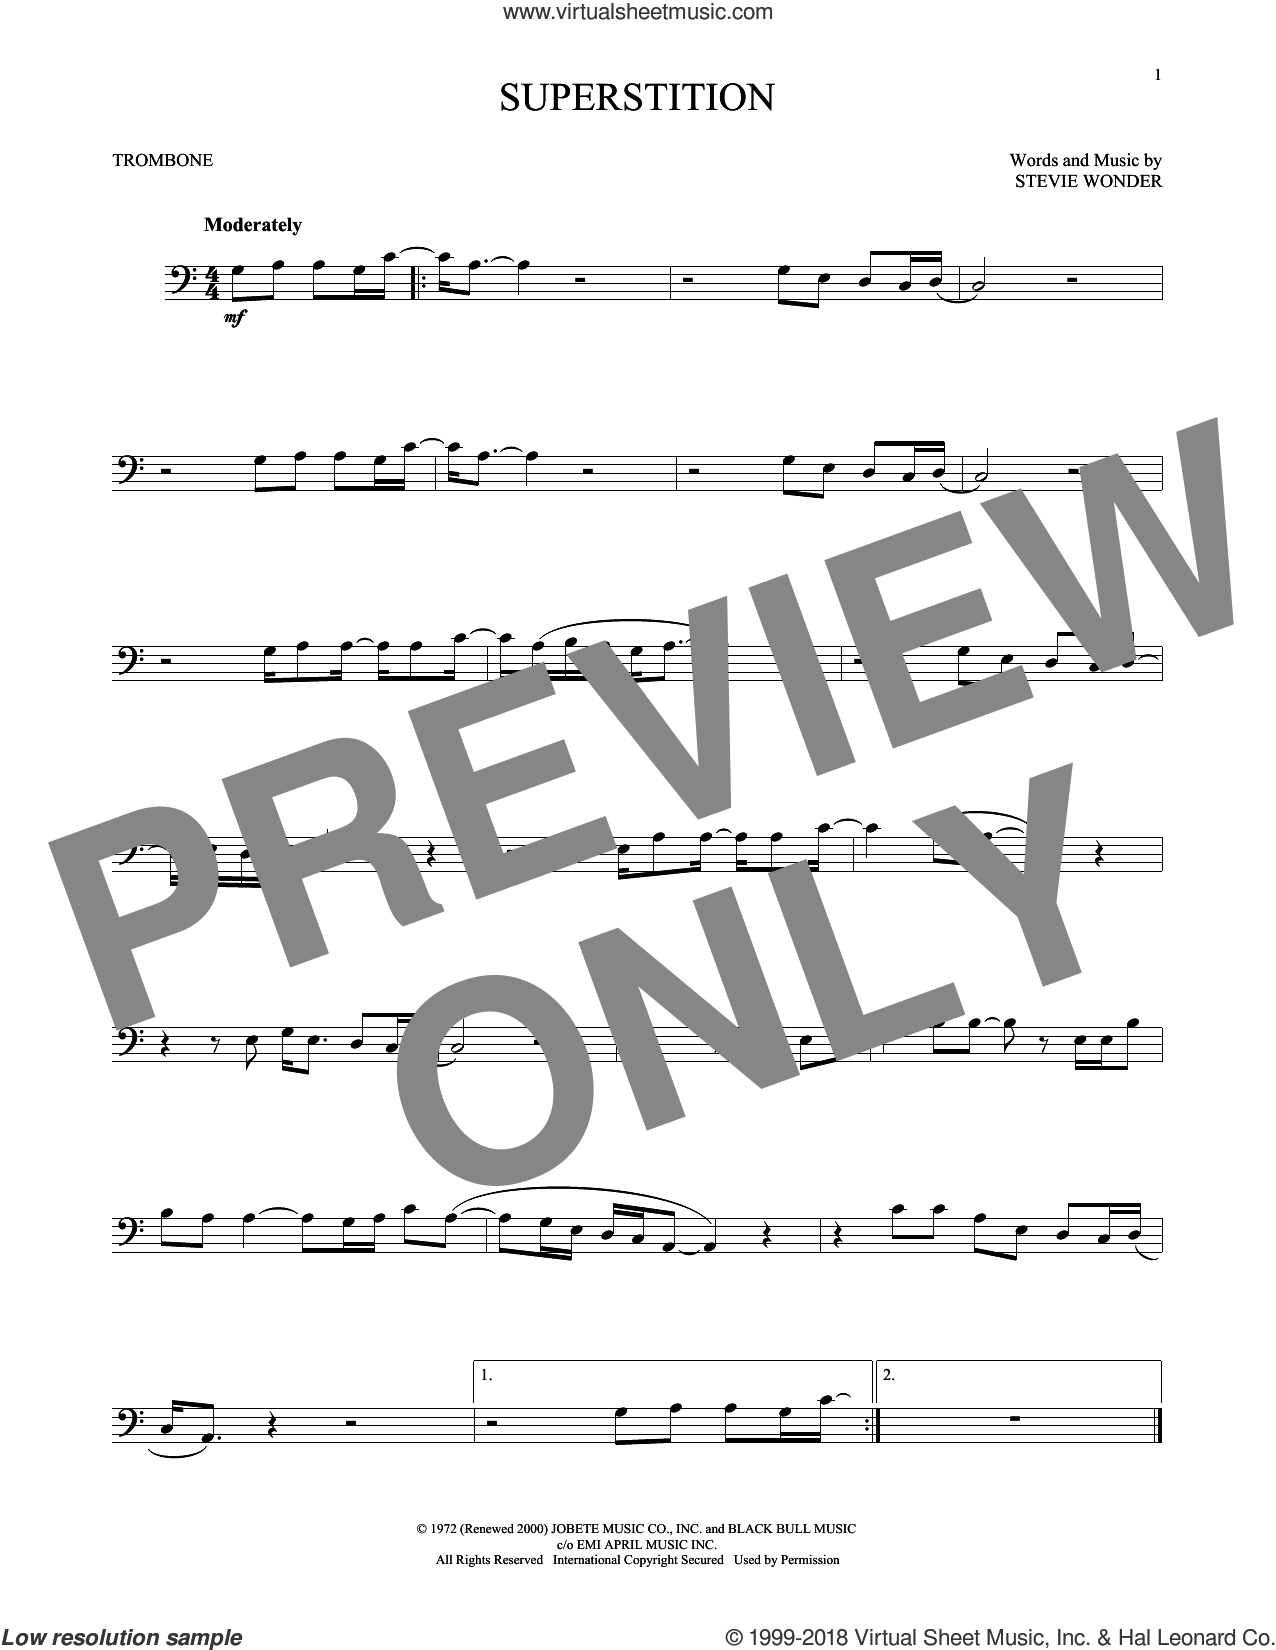 Superstition sheet music for trombone solo by Stevie Wonder, intermediate skill level